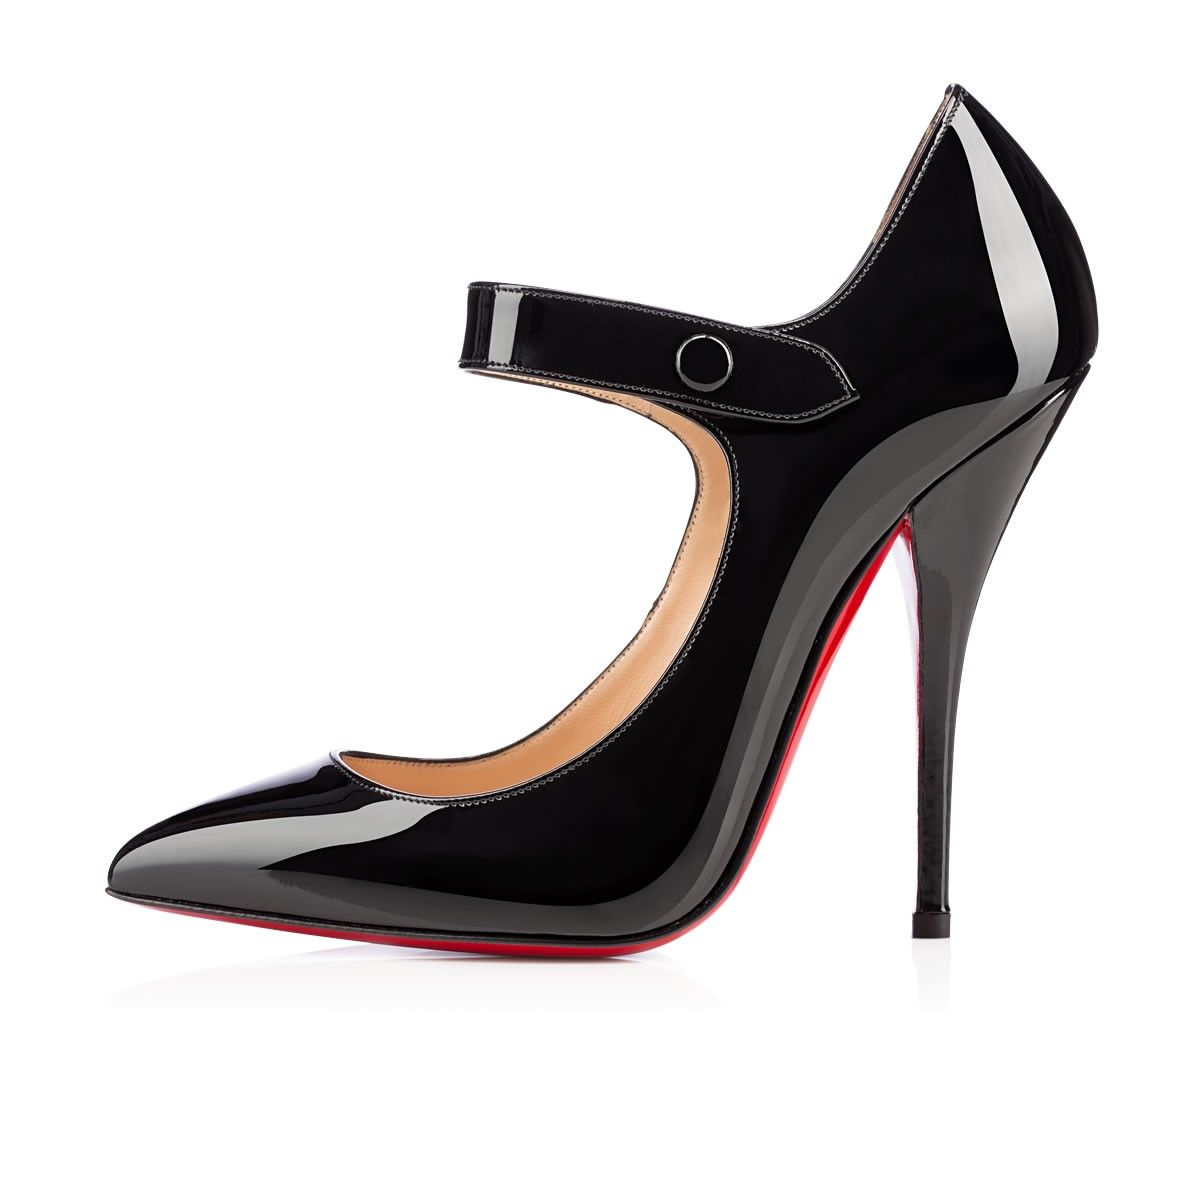 """Make way for """"Neo Pensee,"""" a new style for the Fall/Winter season. Her beautiful pointed toe silhouette has a jaw-dropping 120mm pitch that comes equipped with a Mary Jane strap to buckle you in. Let her transform your looks in black patent leather."""